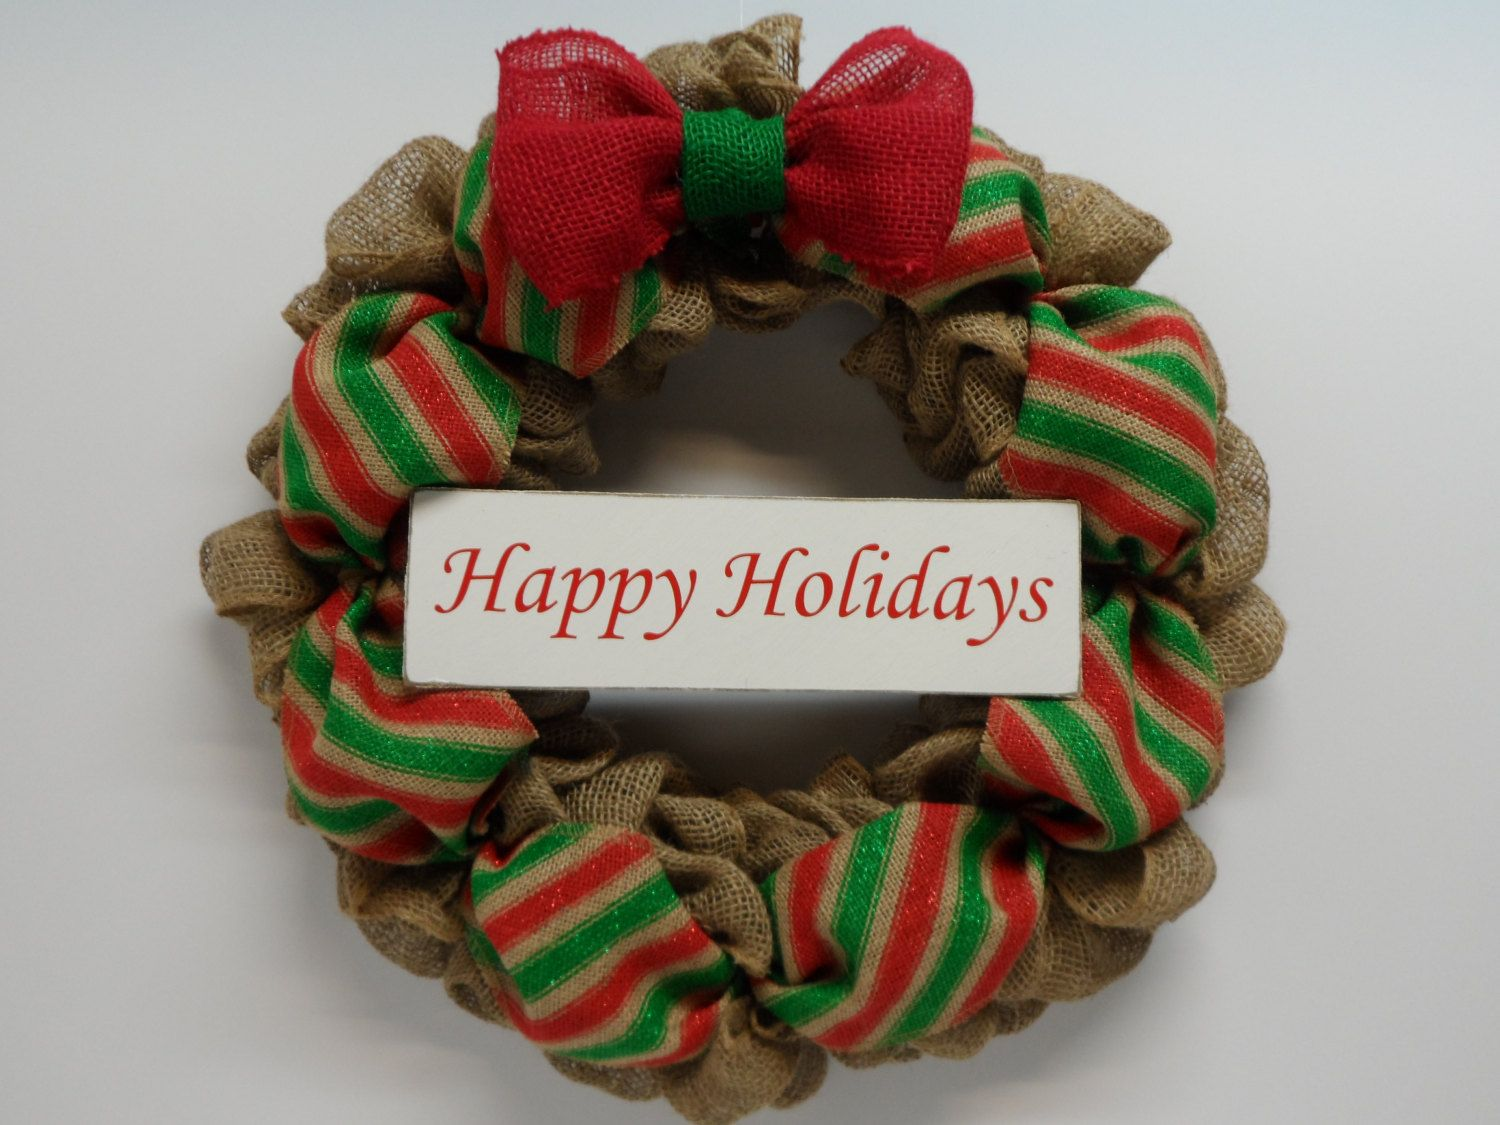 Christmas Burlap Wreath, Holiday Burlap Wreath, Happy Holidays Wreath, Happy Holidays Sign, Front Door Wreath, Natural Green and Red Burlap by BeautifulHomeAccents on Etsy